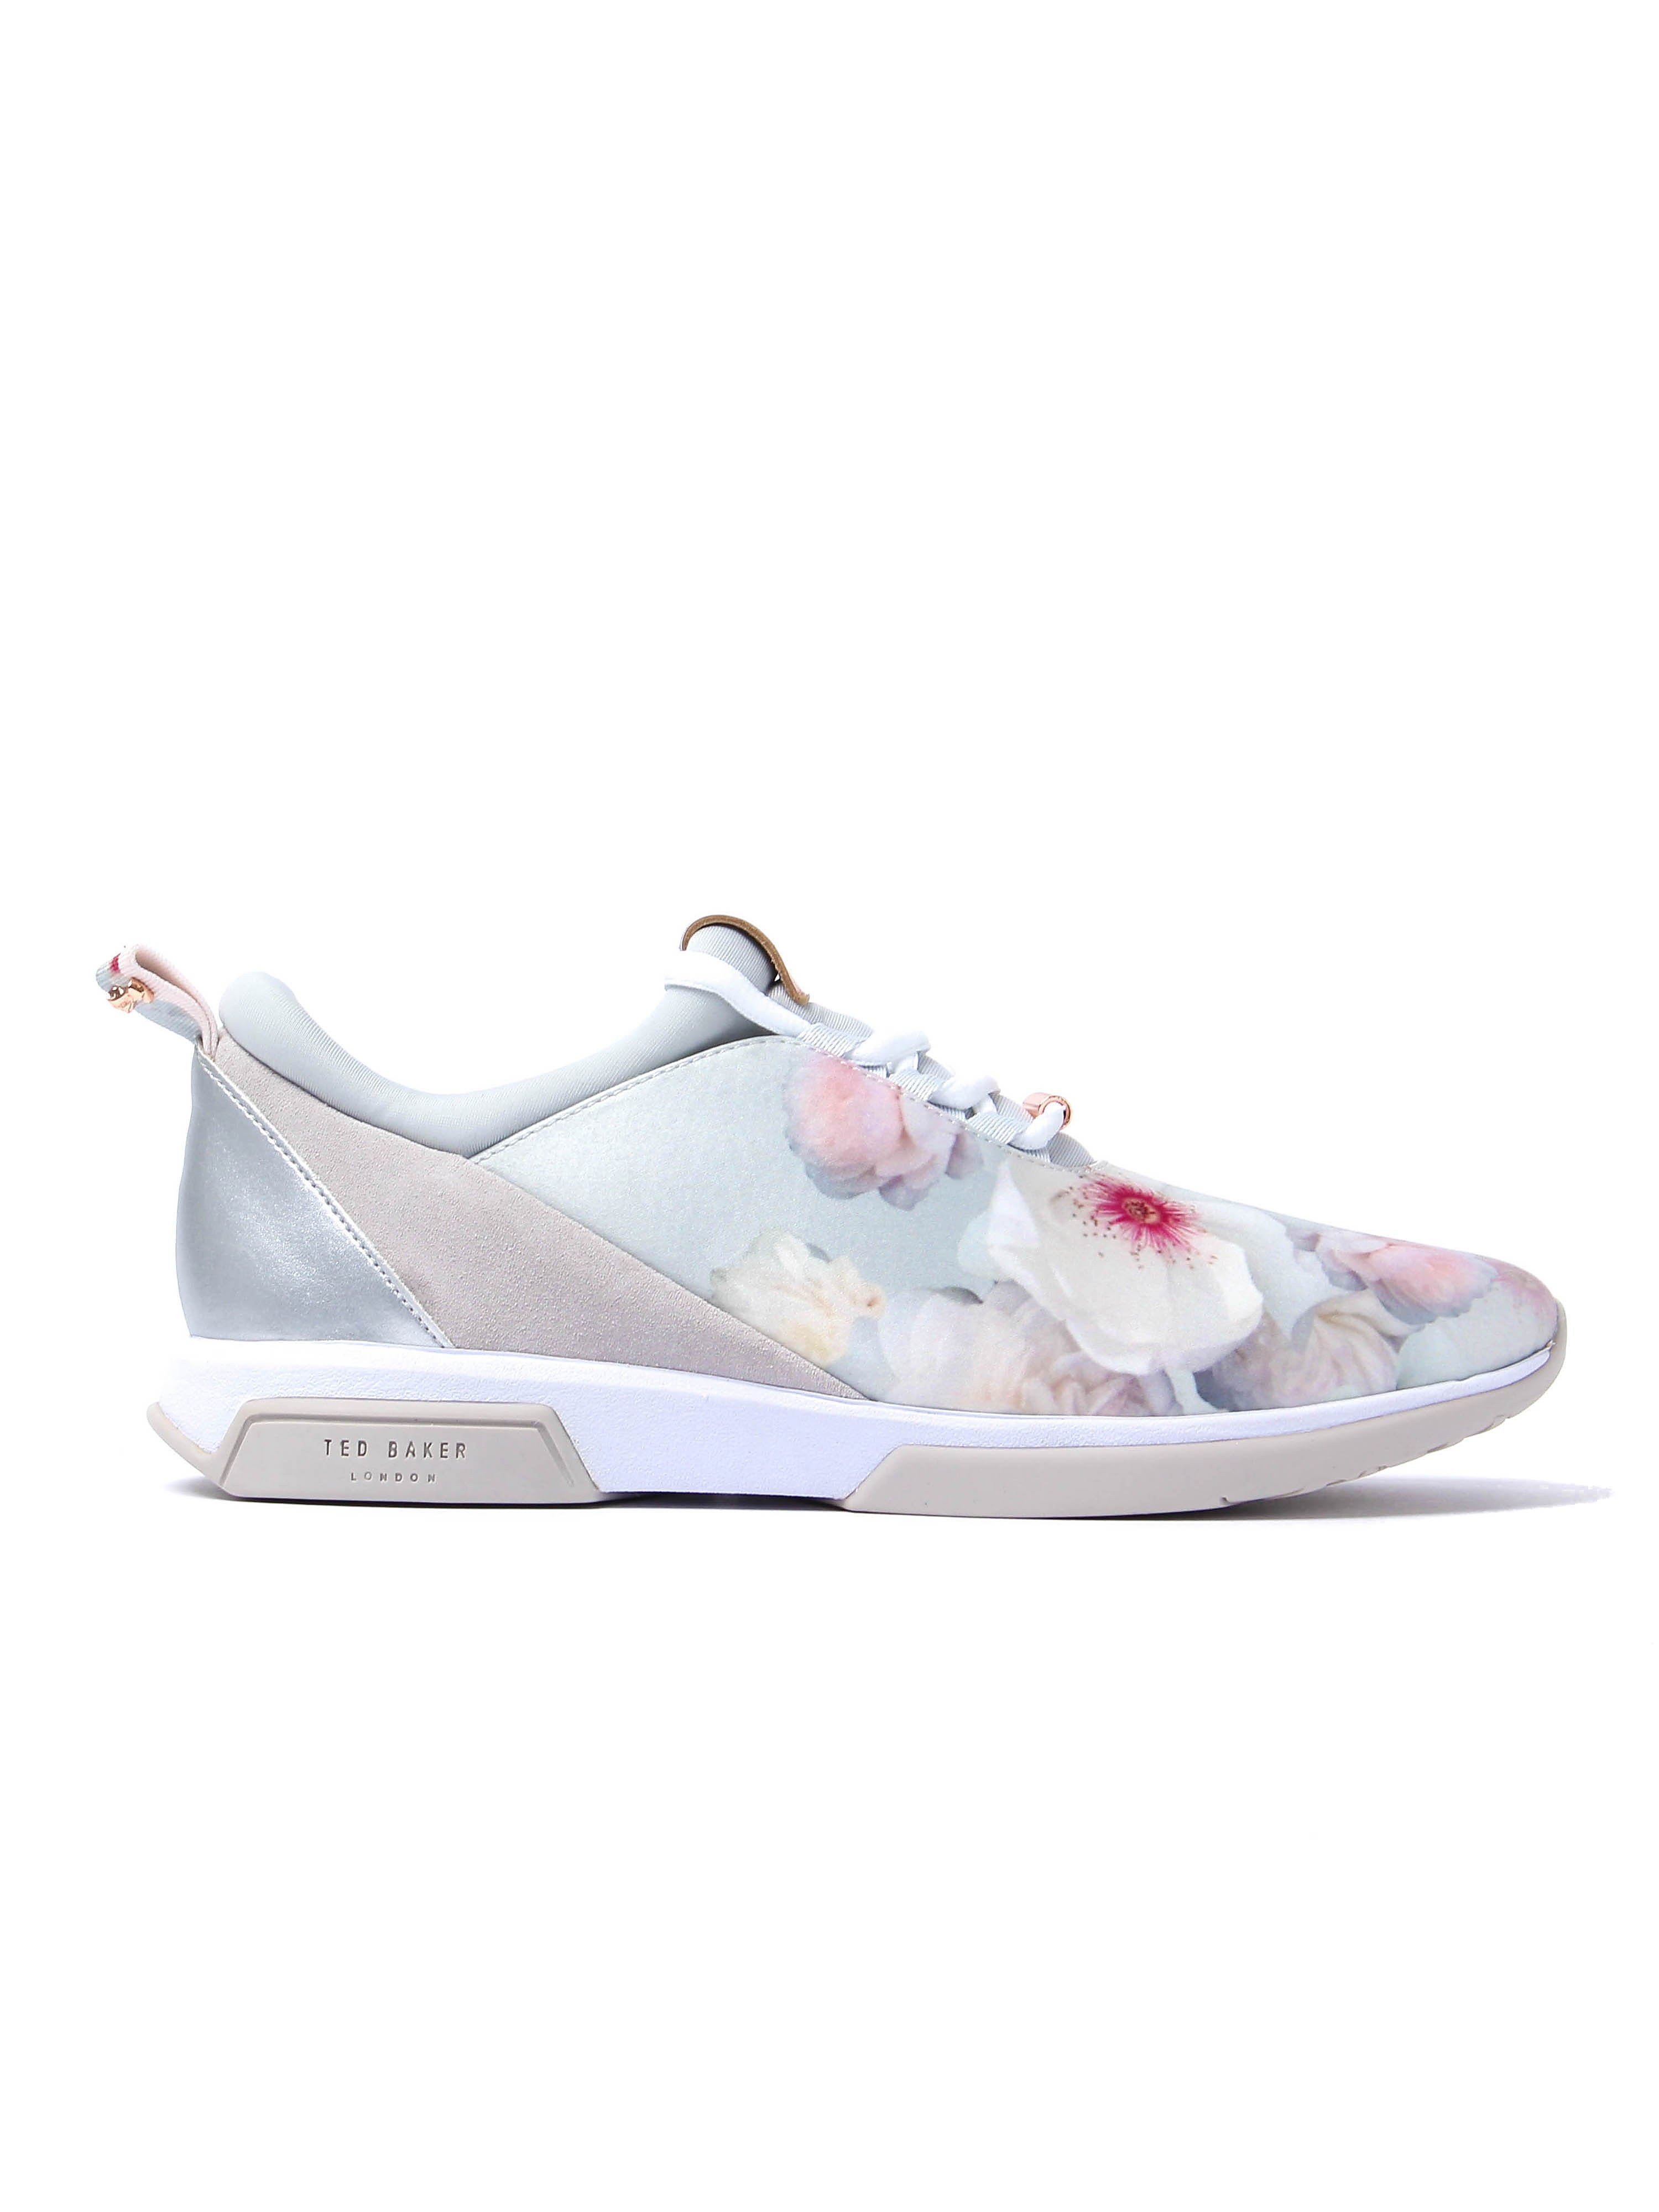 Ted Baker Women's Cepap Trainers - Grey Chelsea